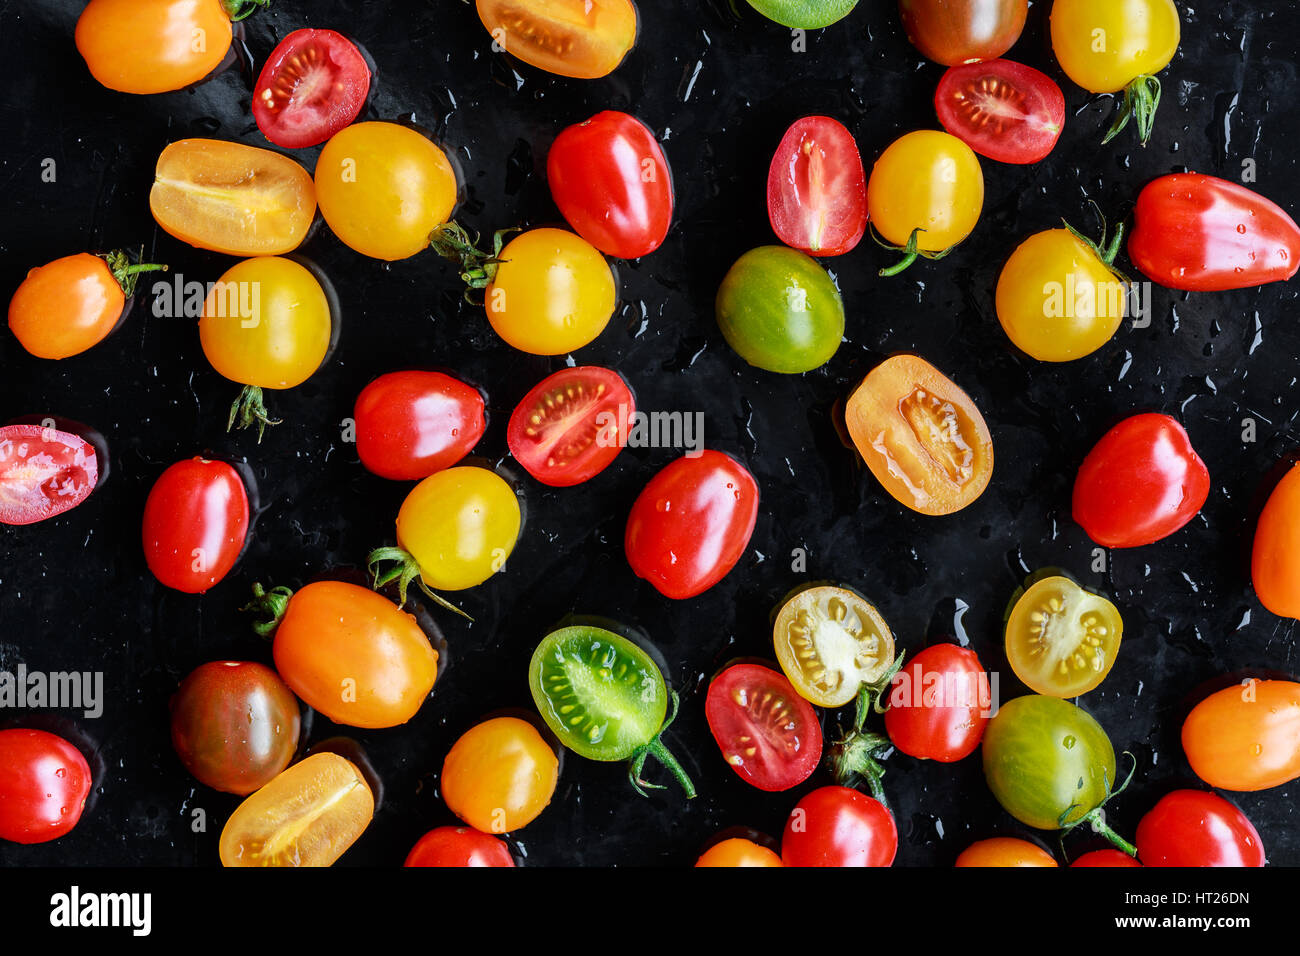 Multi-colored tomatoes on black background - Stock Image